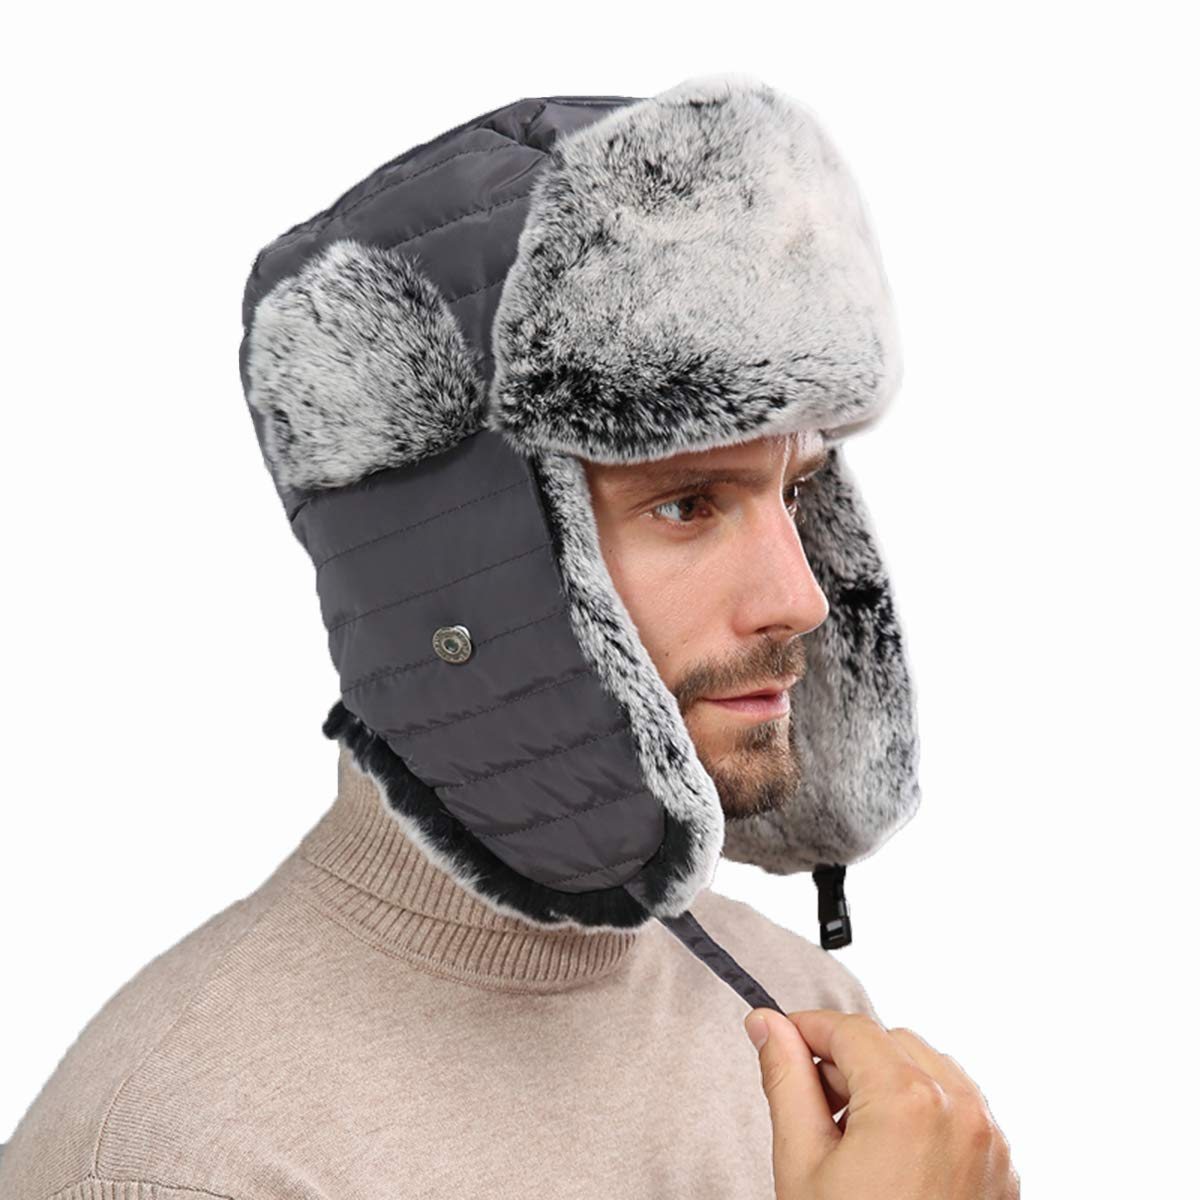 Real Rabbit Fur Bomber Hat for Men and Women with Earmuff Warm Outdoor 3 Sizes (Dark Gray,M)